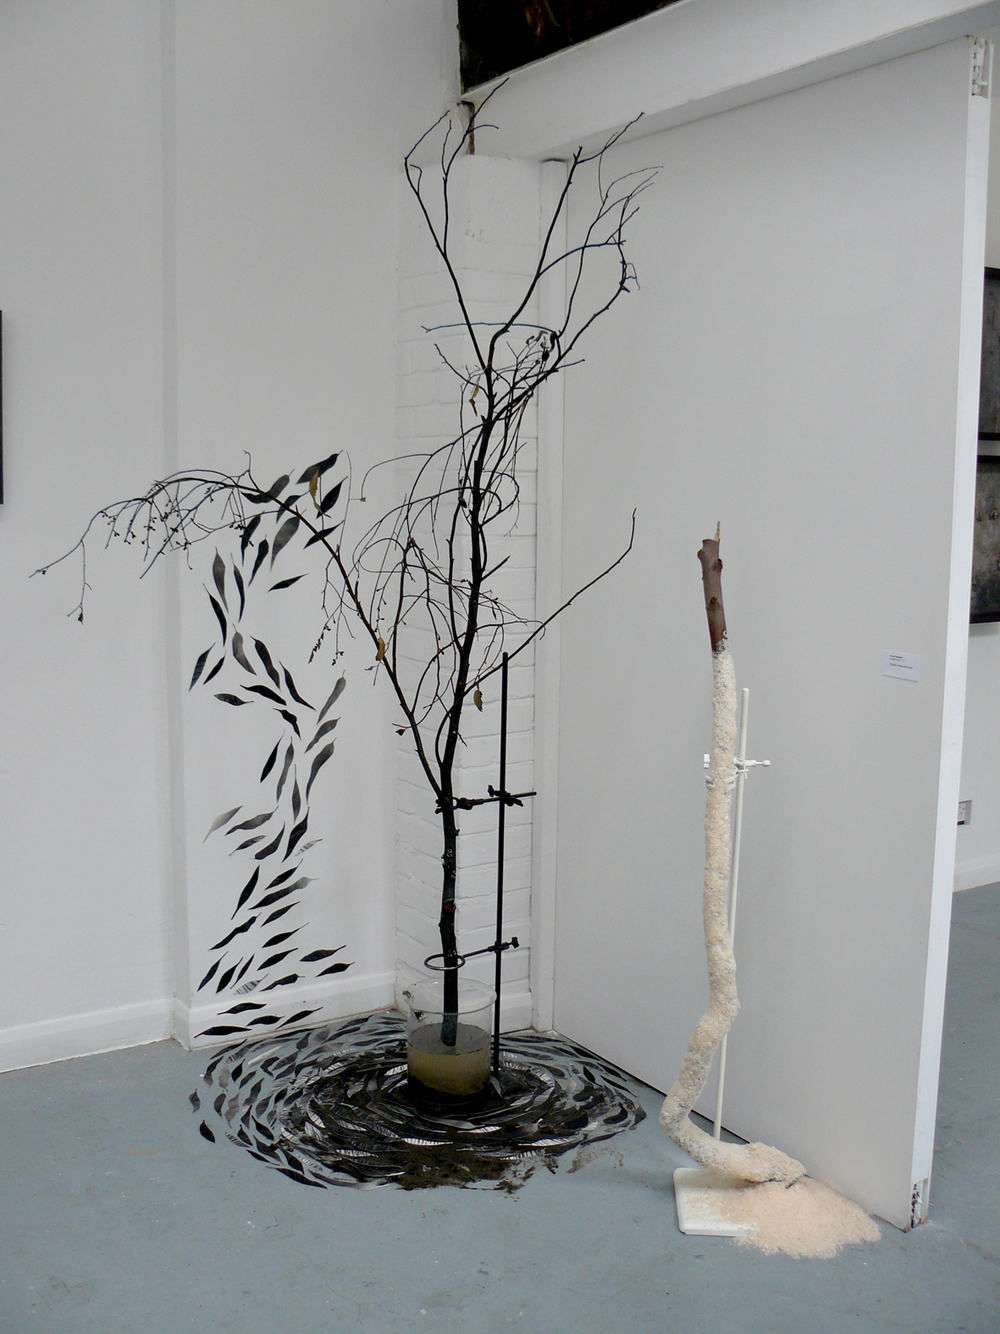 installation view, Landscape of Change exhibition 2011